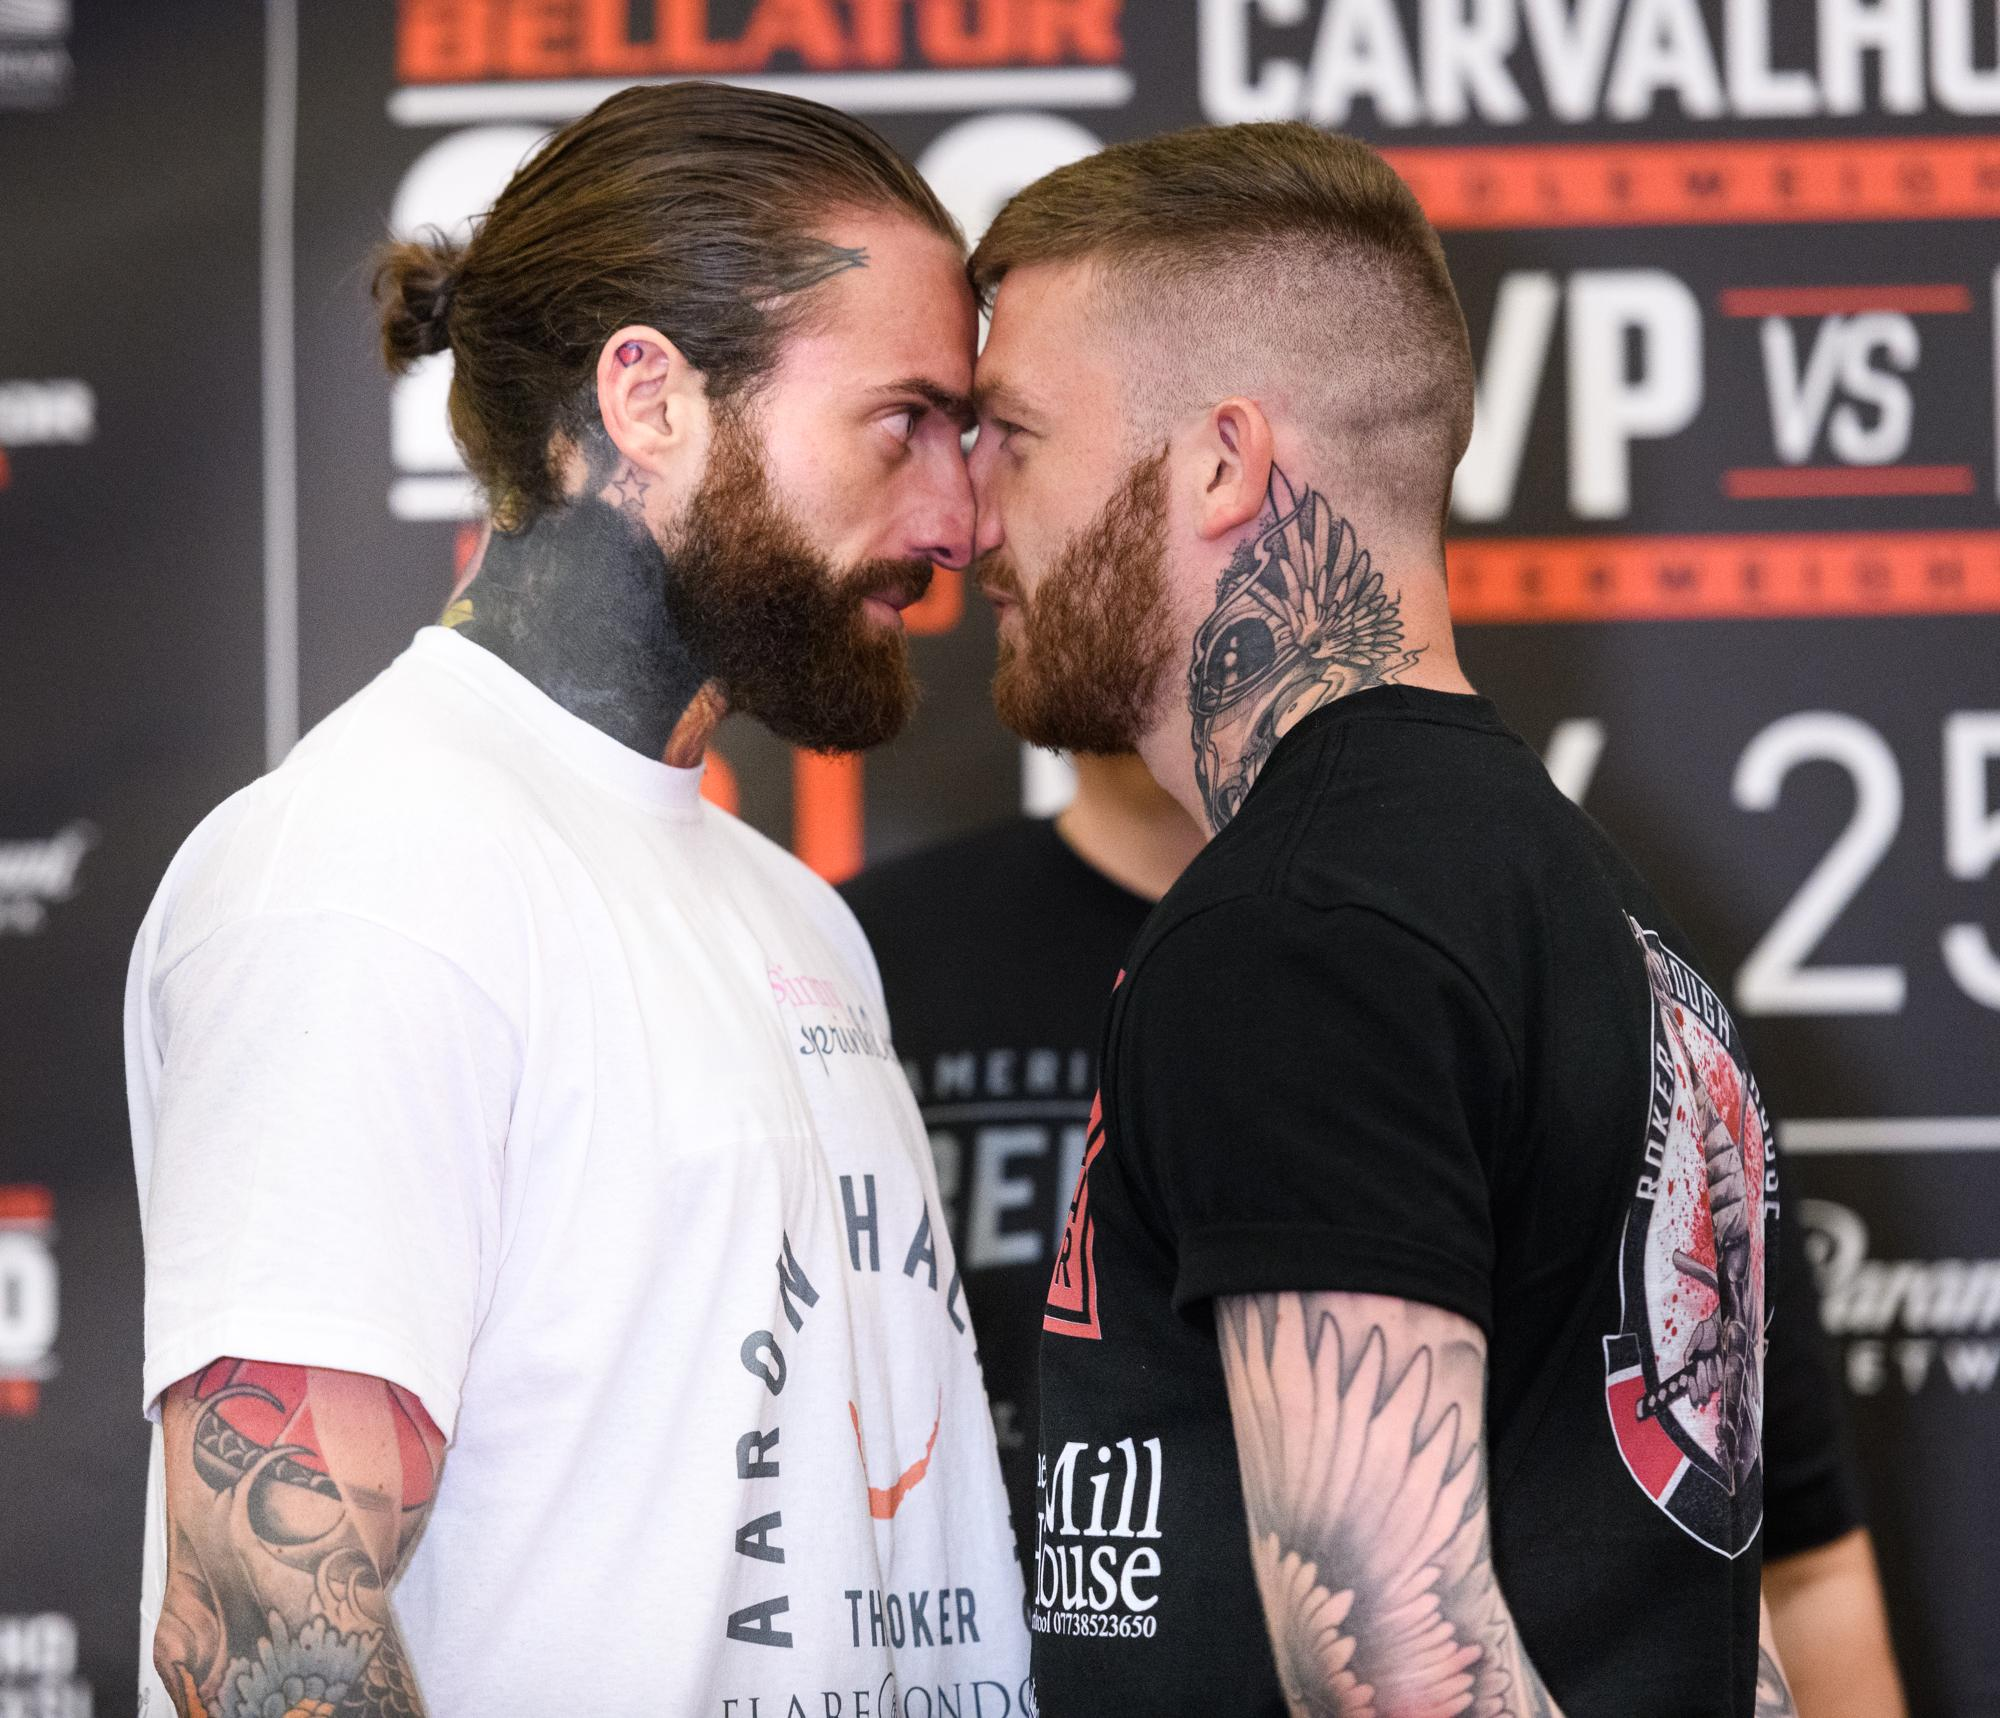 Aaron Chalmers is undefeated in MMA after he decided to give up reality TV